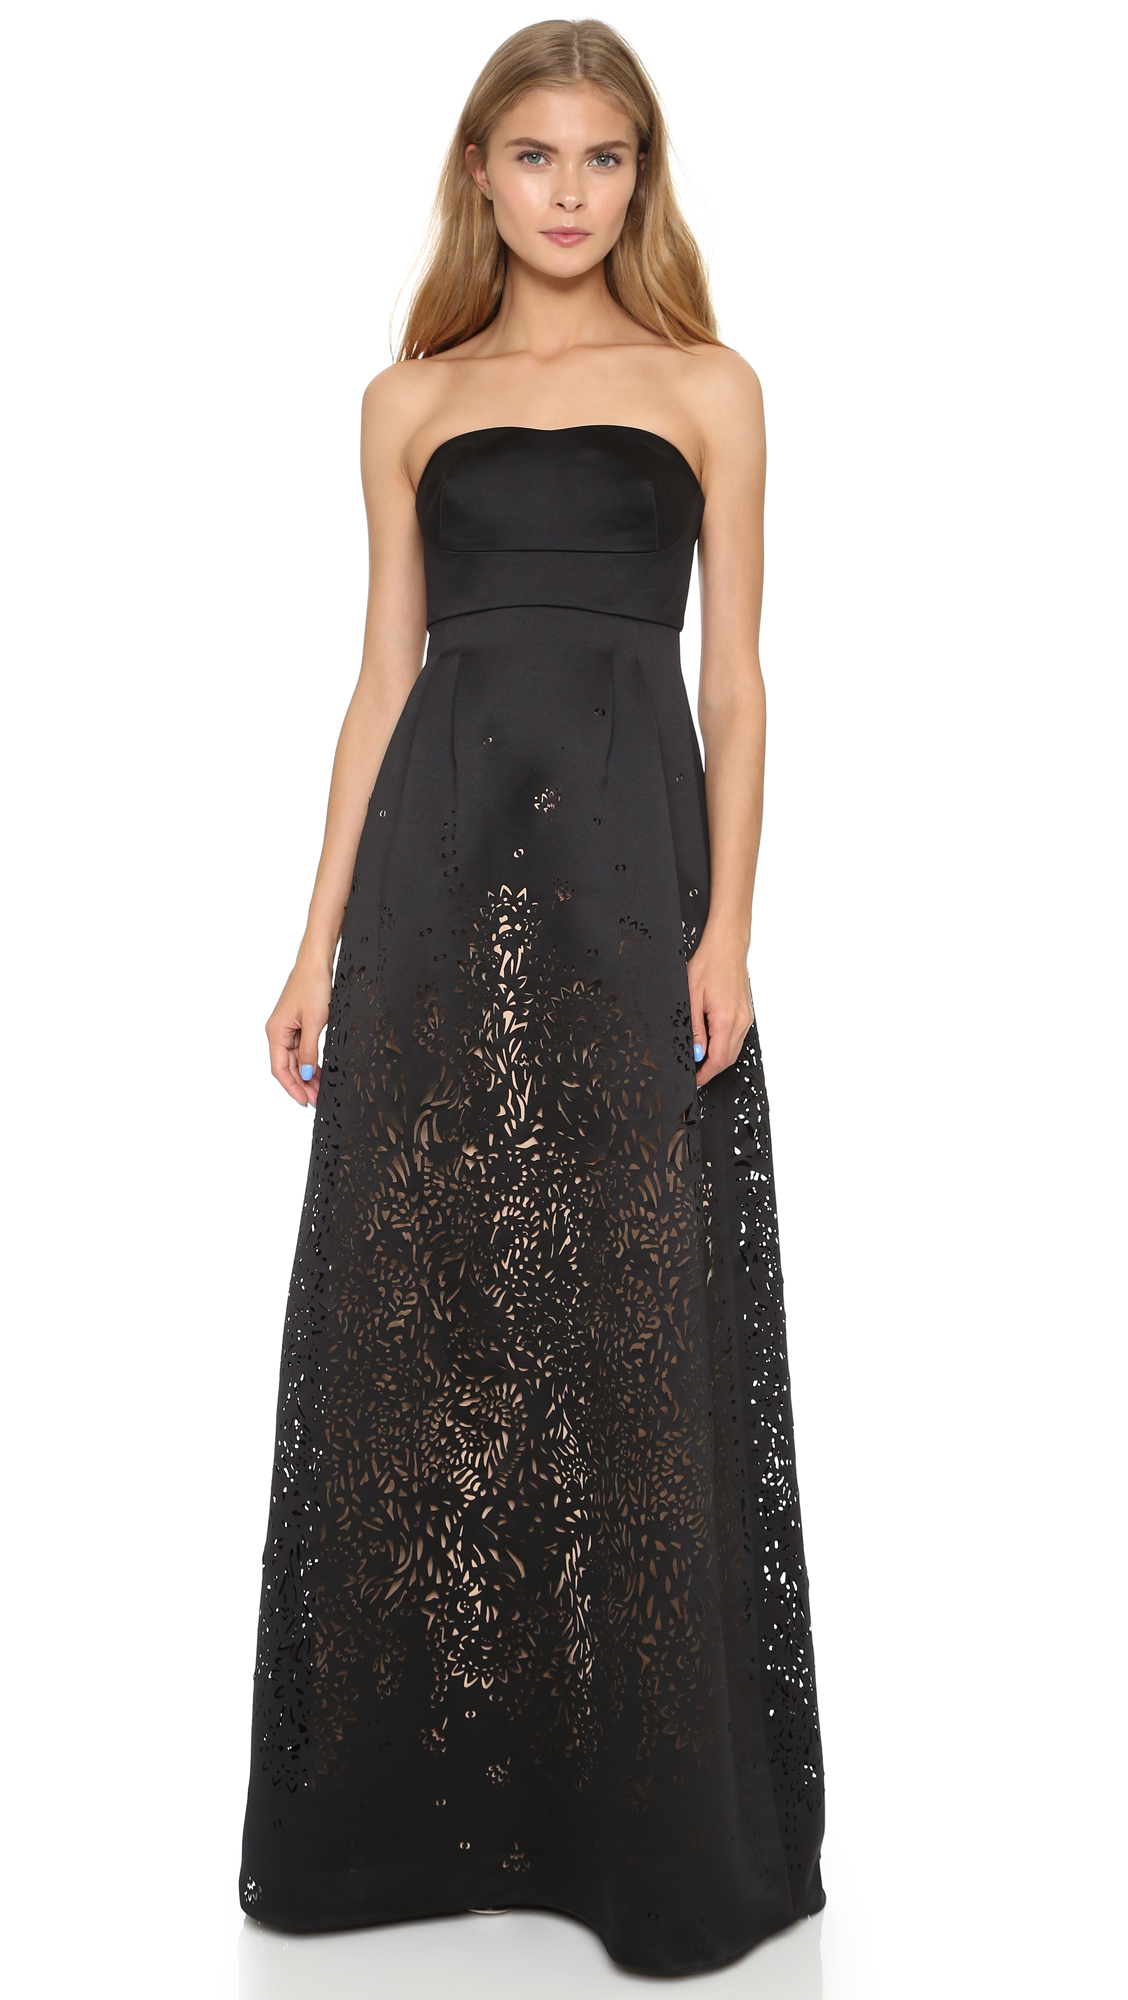 Notte by marchesa Satin Strapless Gown - Black in Black - Lyst